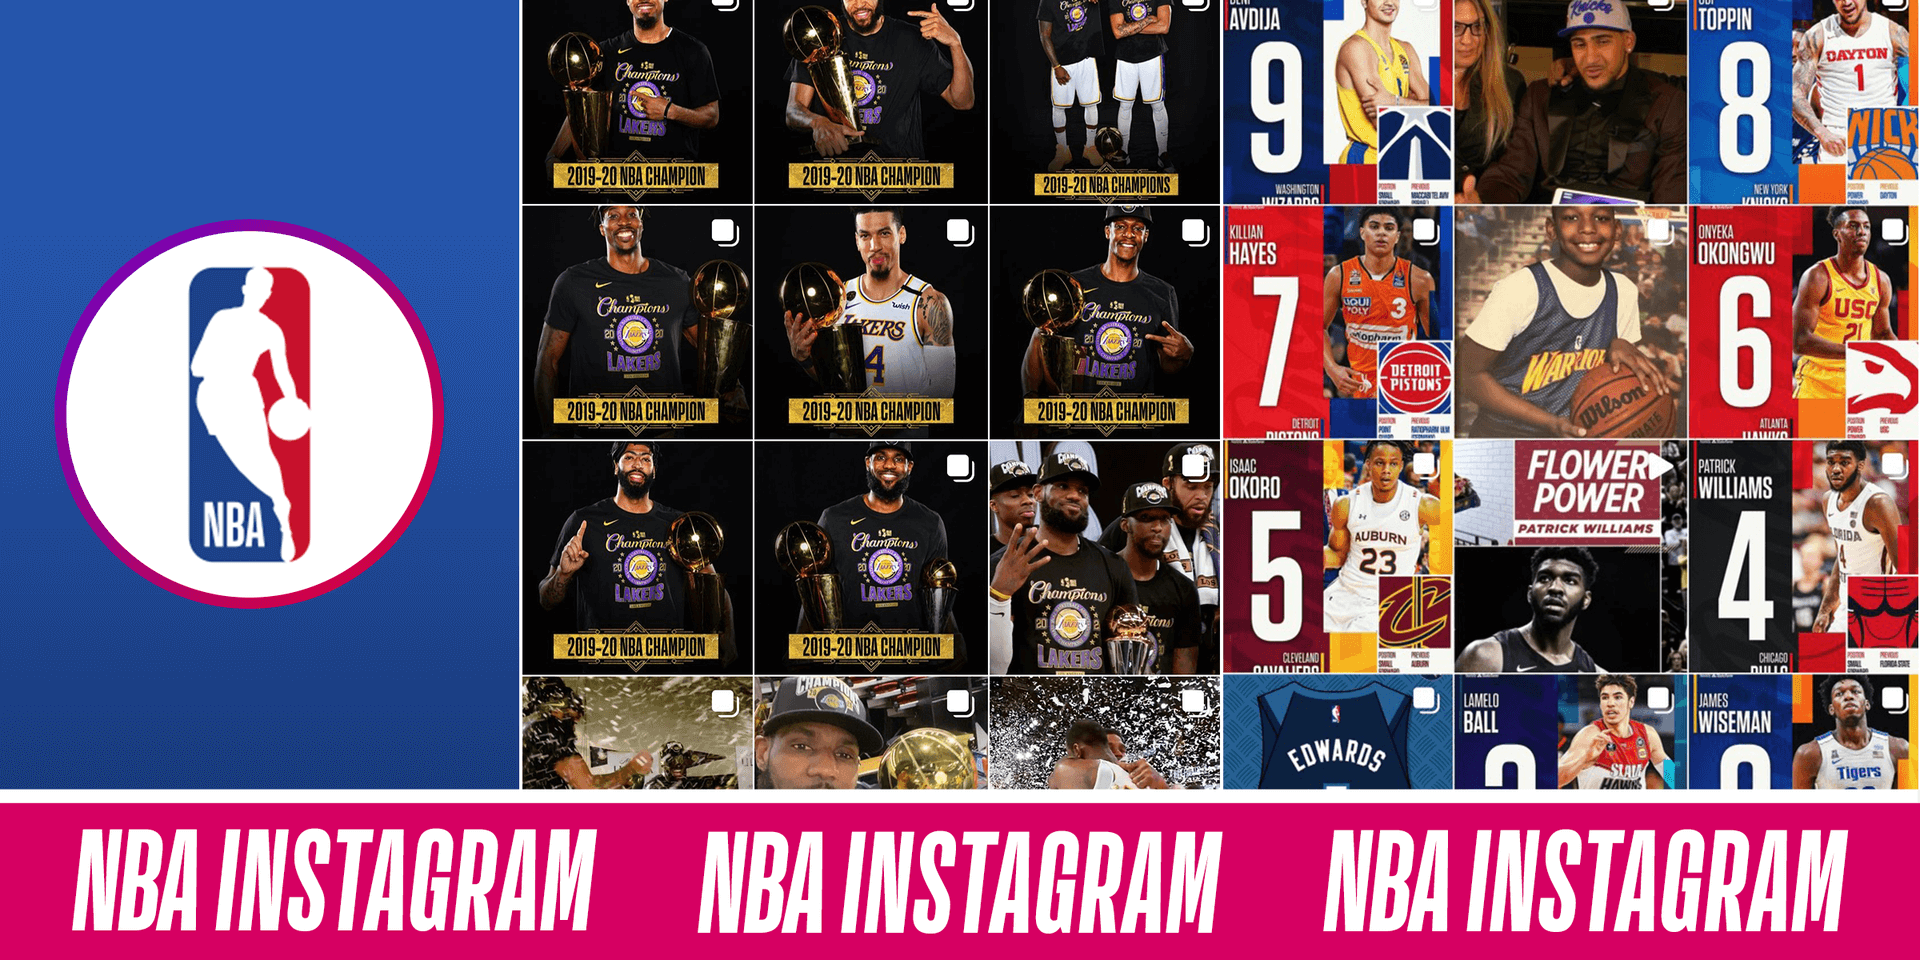 NBA Instagram's Highest-Performing Year Ever